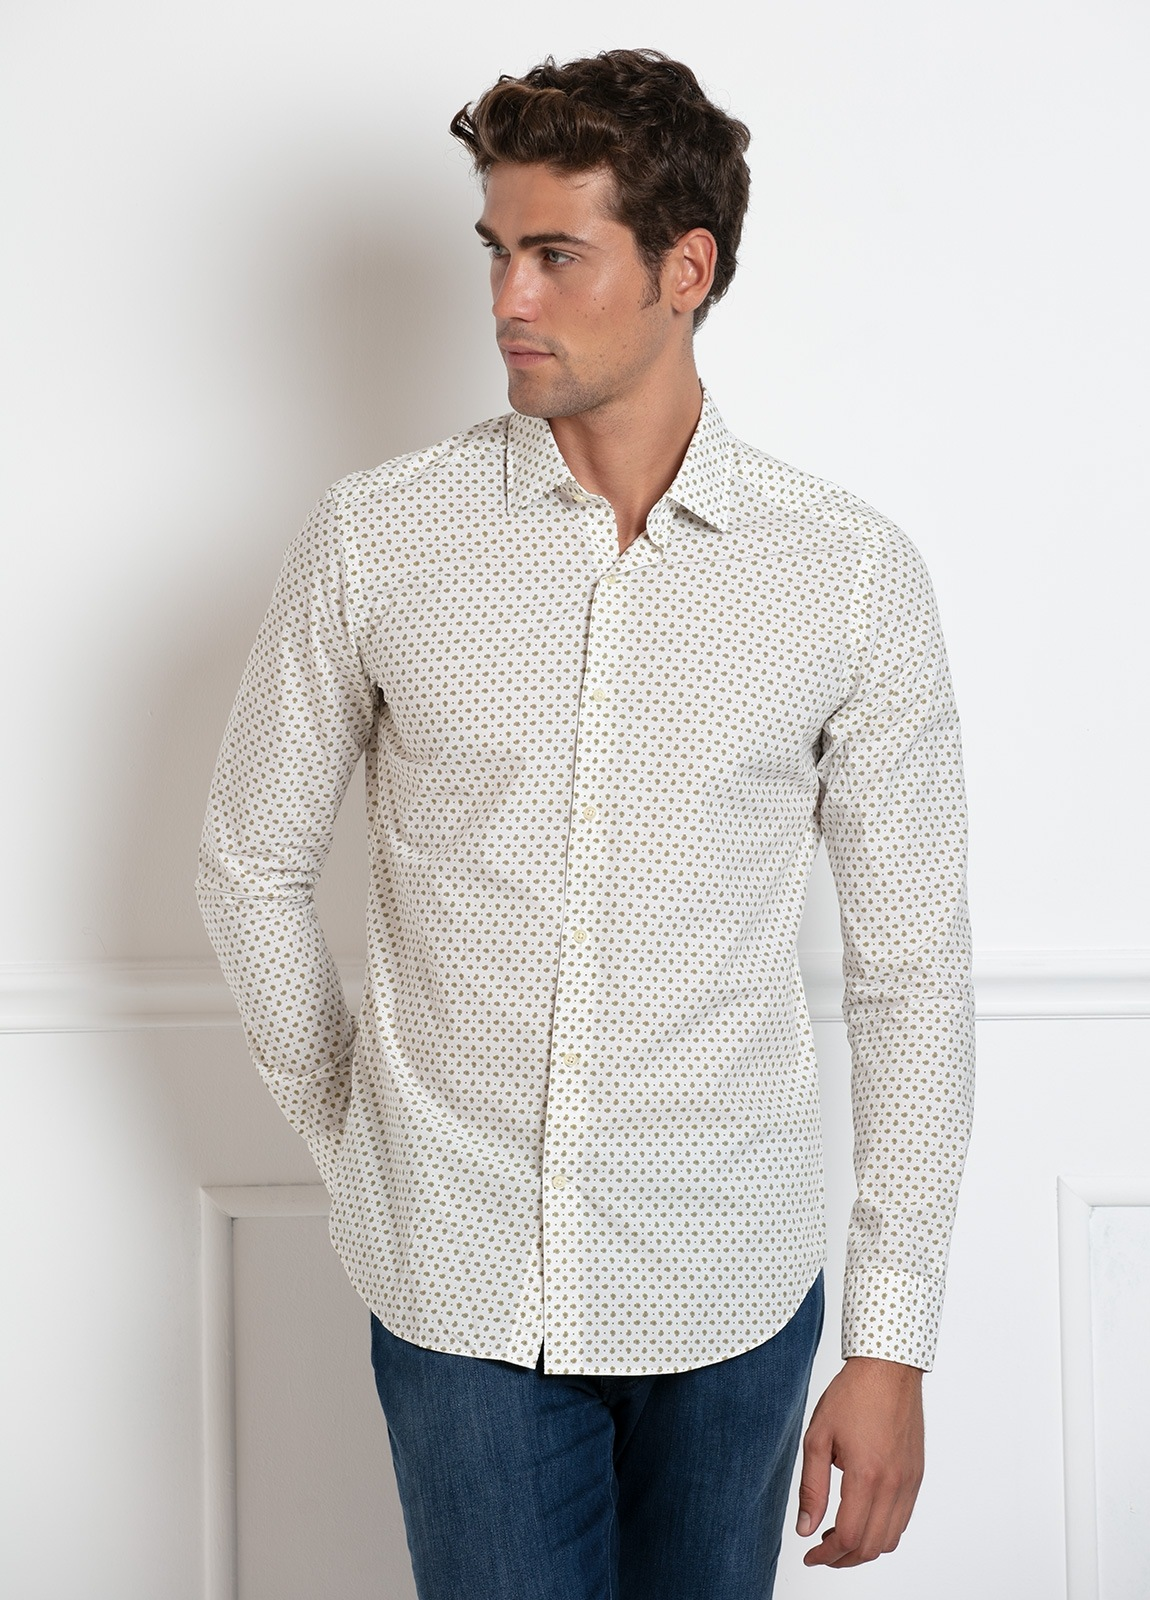 Camisa Leisure Wear SLIM FIT modelo PORTO, color blanco, dibujo cashemere color verde kaki . 100% Algodón.